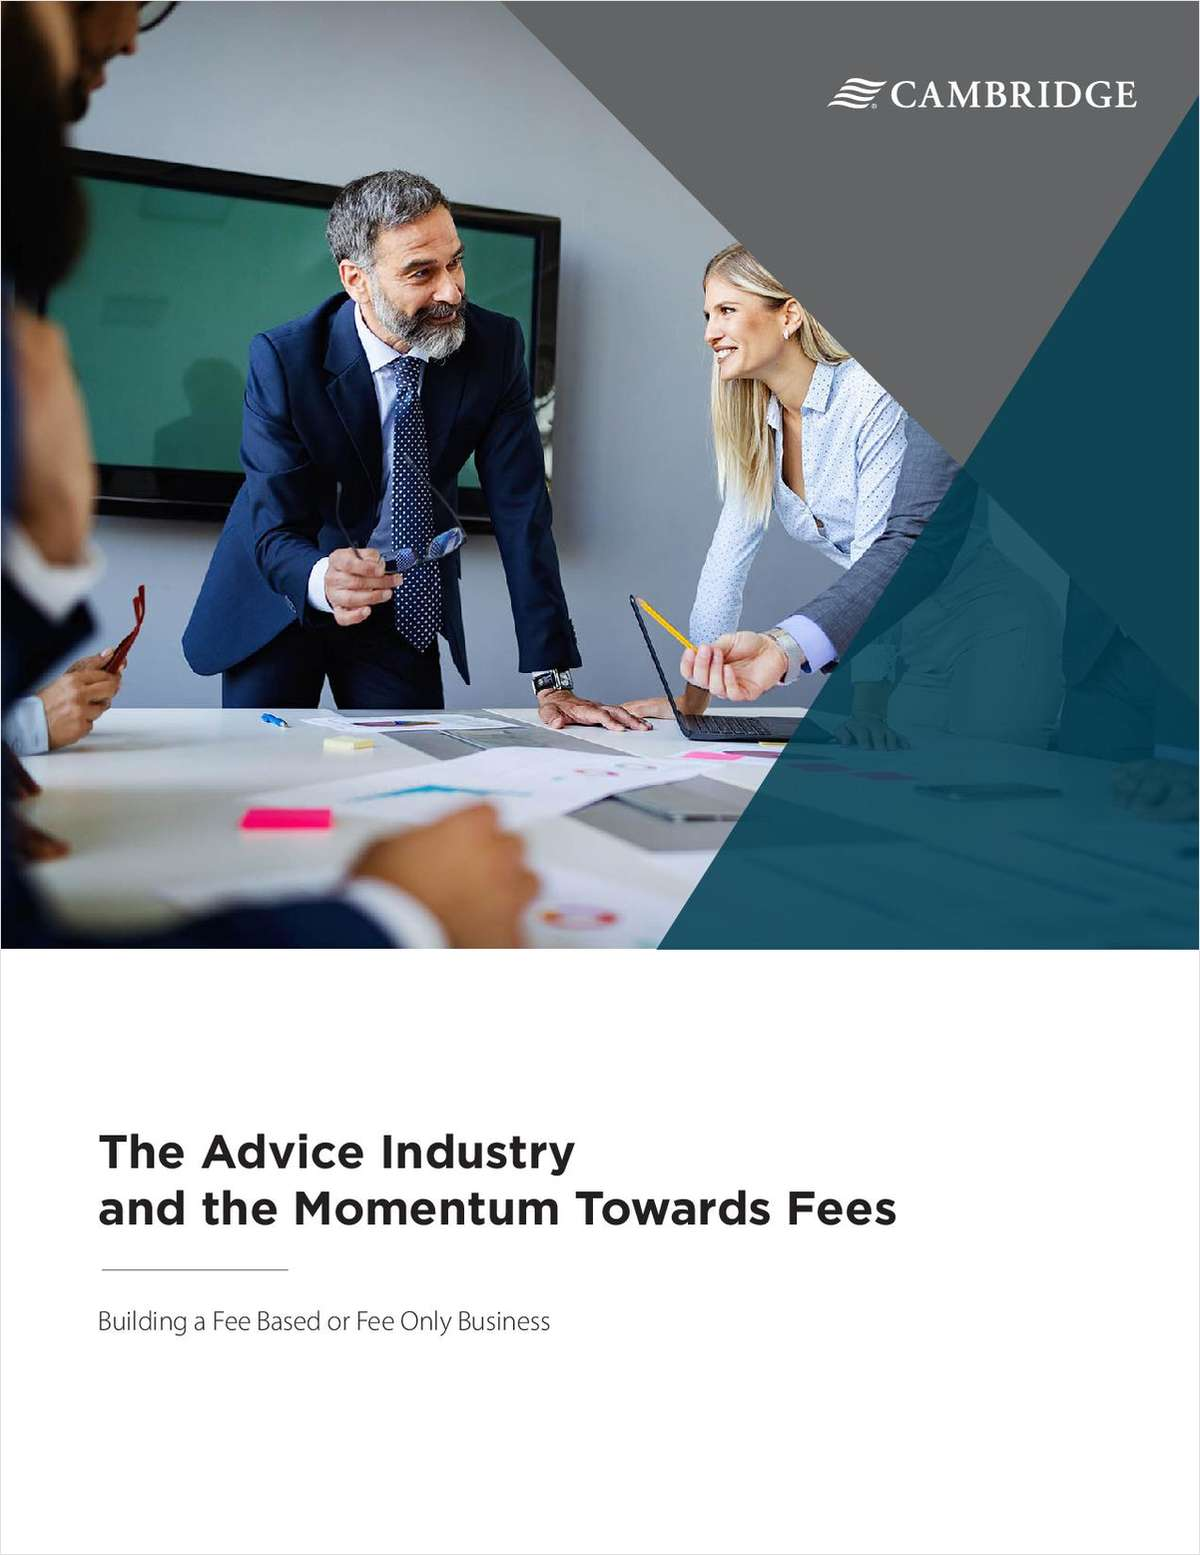 6 Steps to Building a Fee Based or Fee Only Business